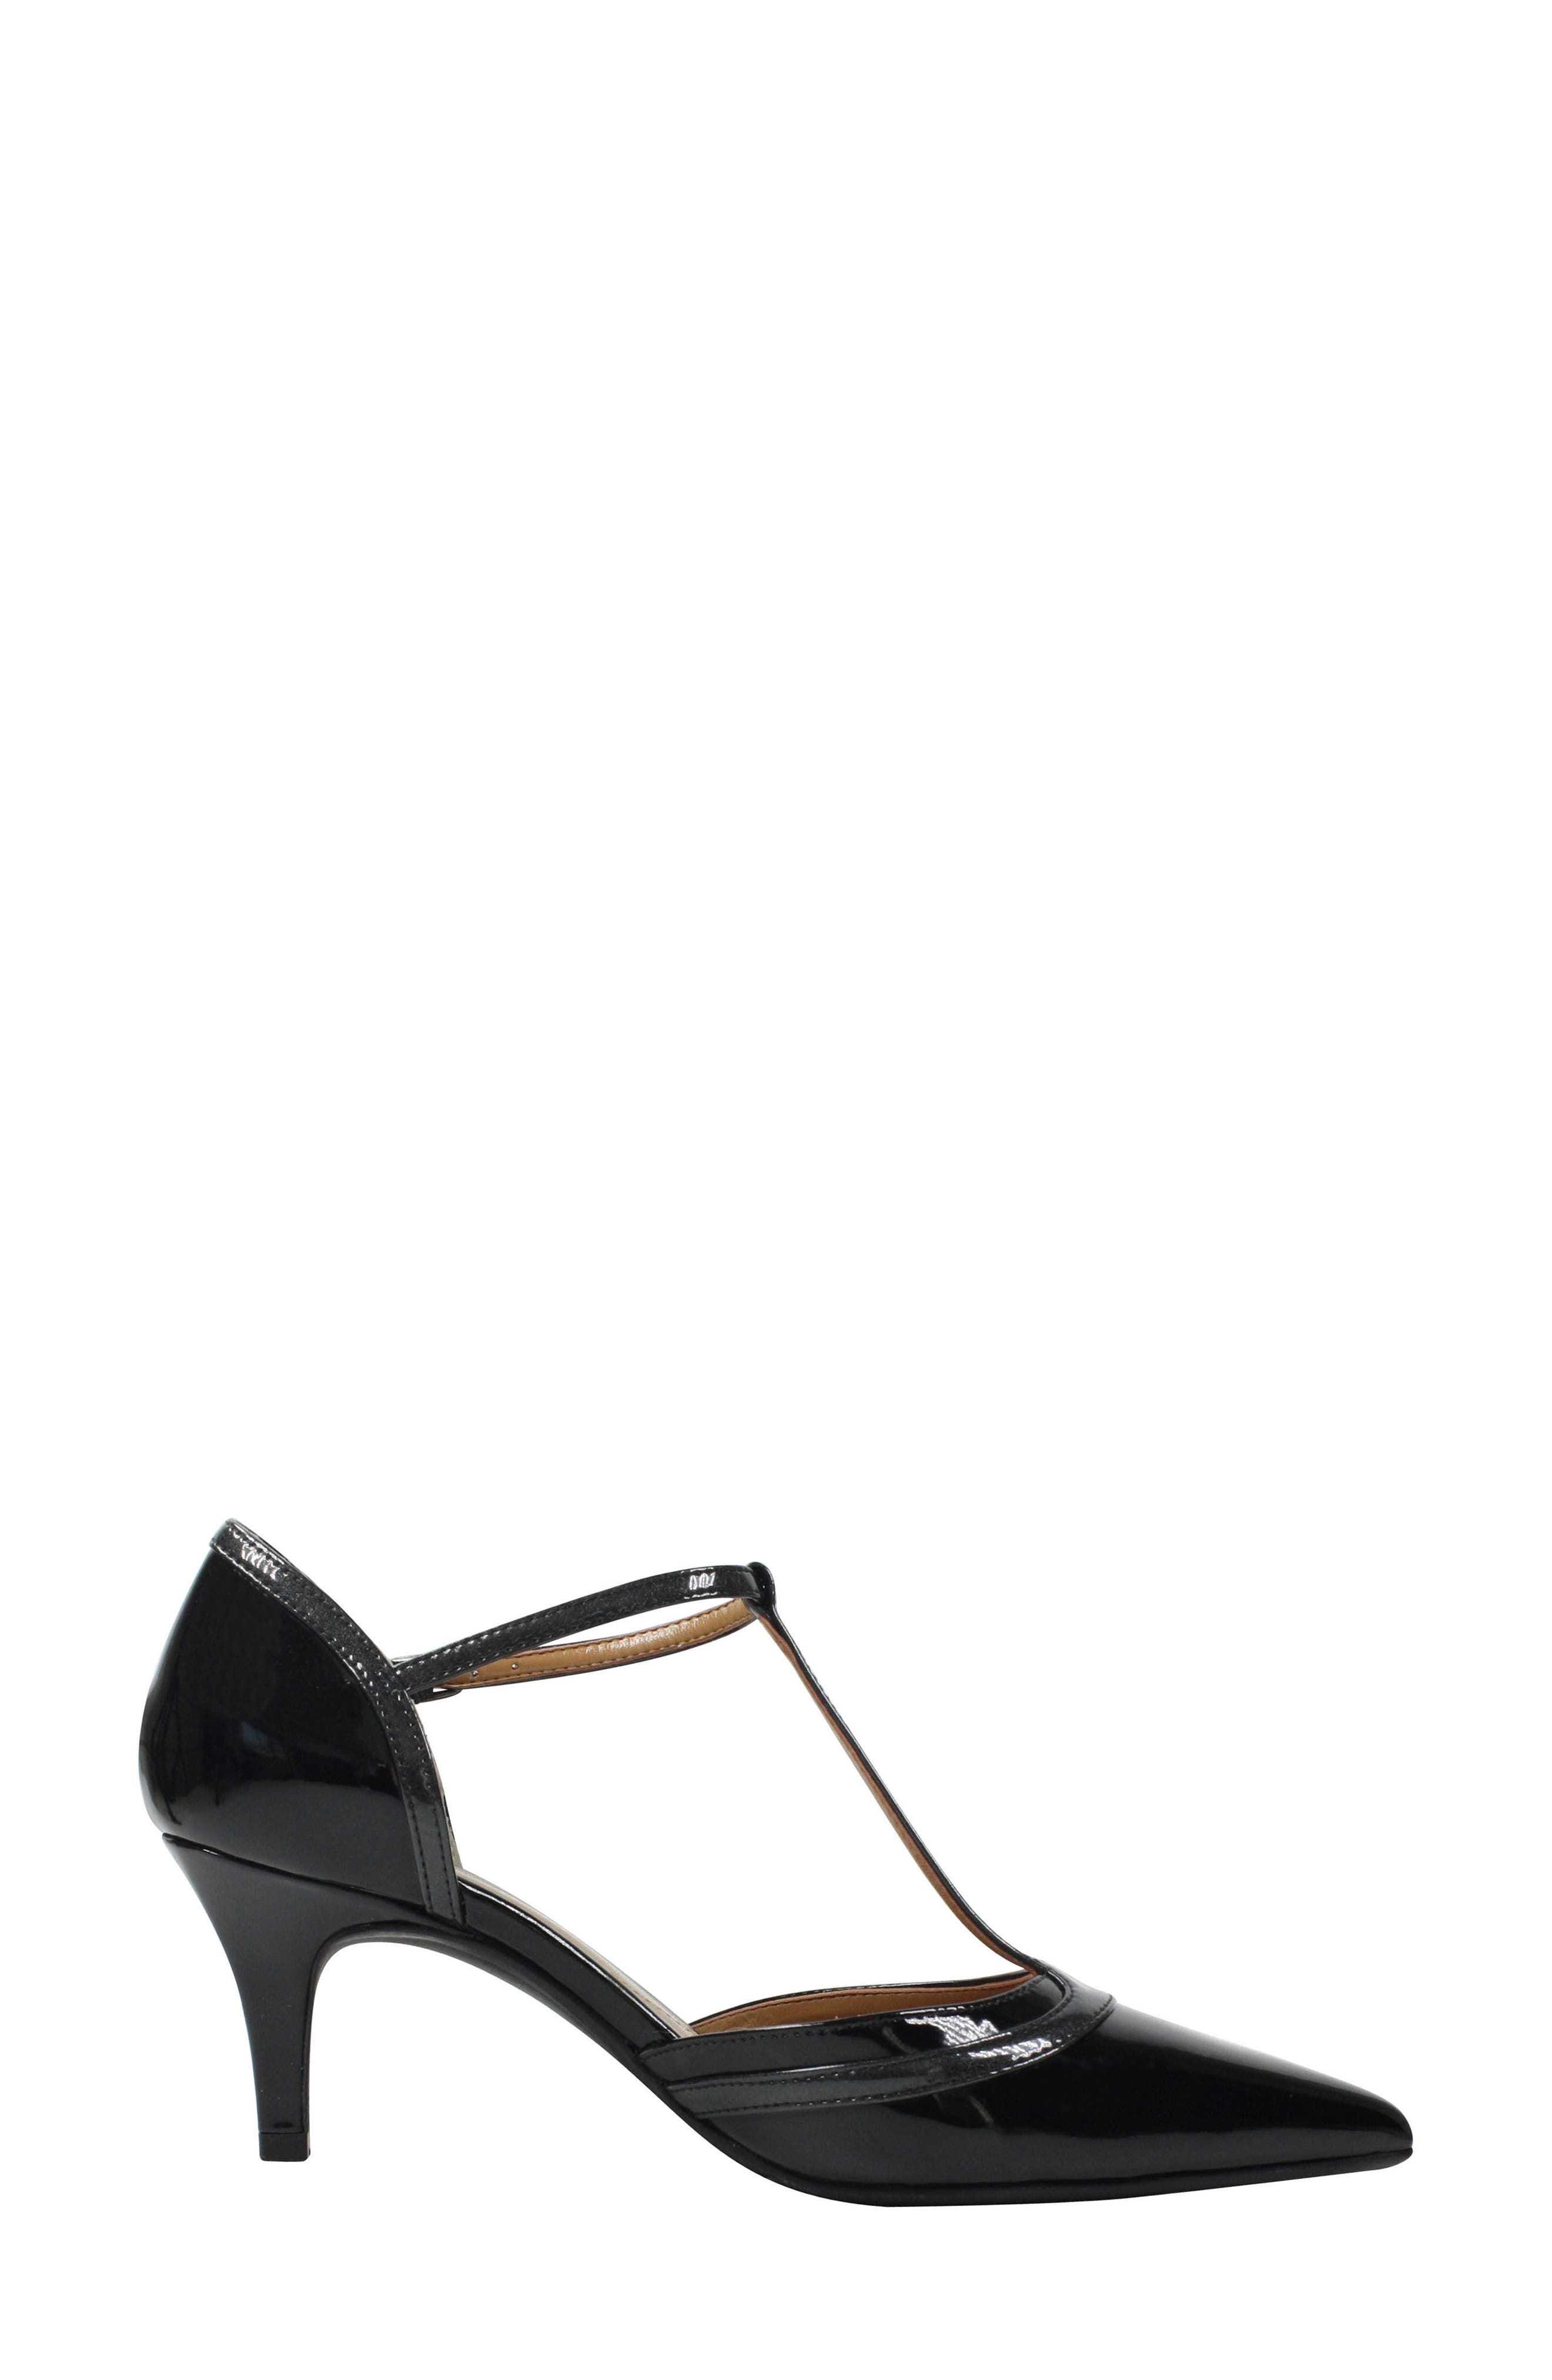 Emiliana T-Strap Pump,                             Alternate thumbnail 3, color,                             001